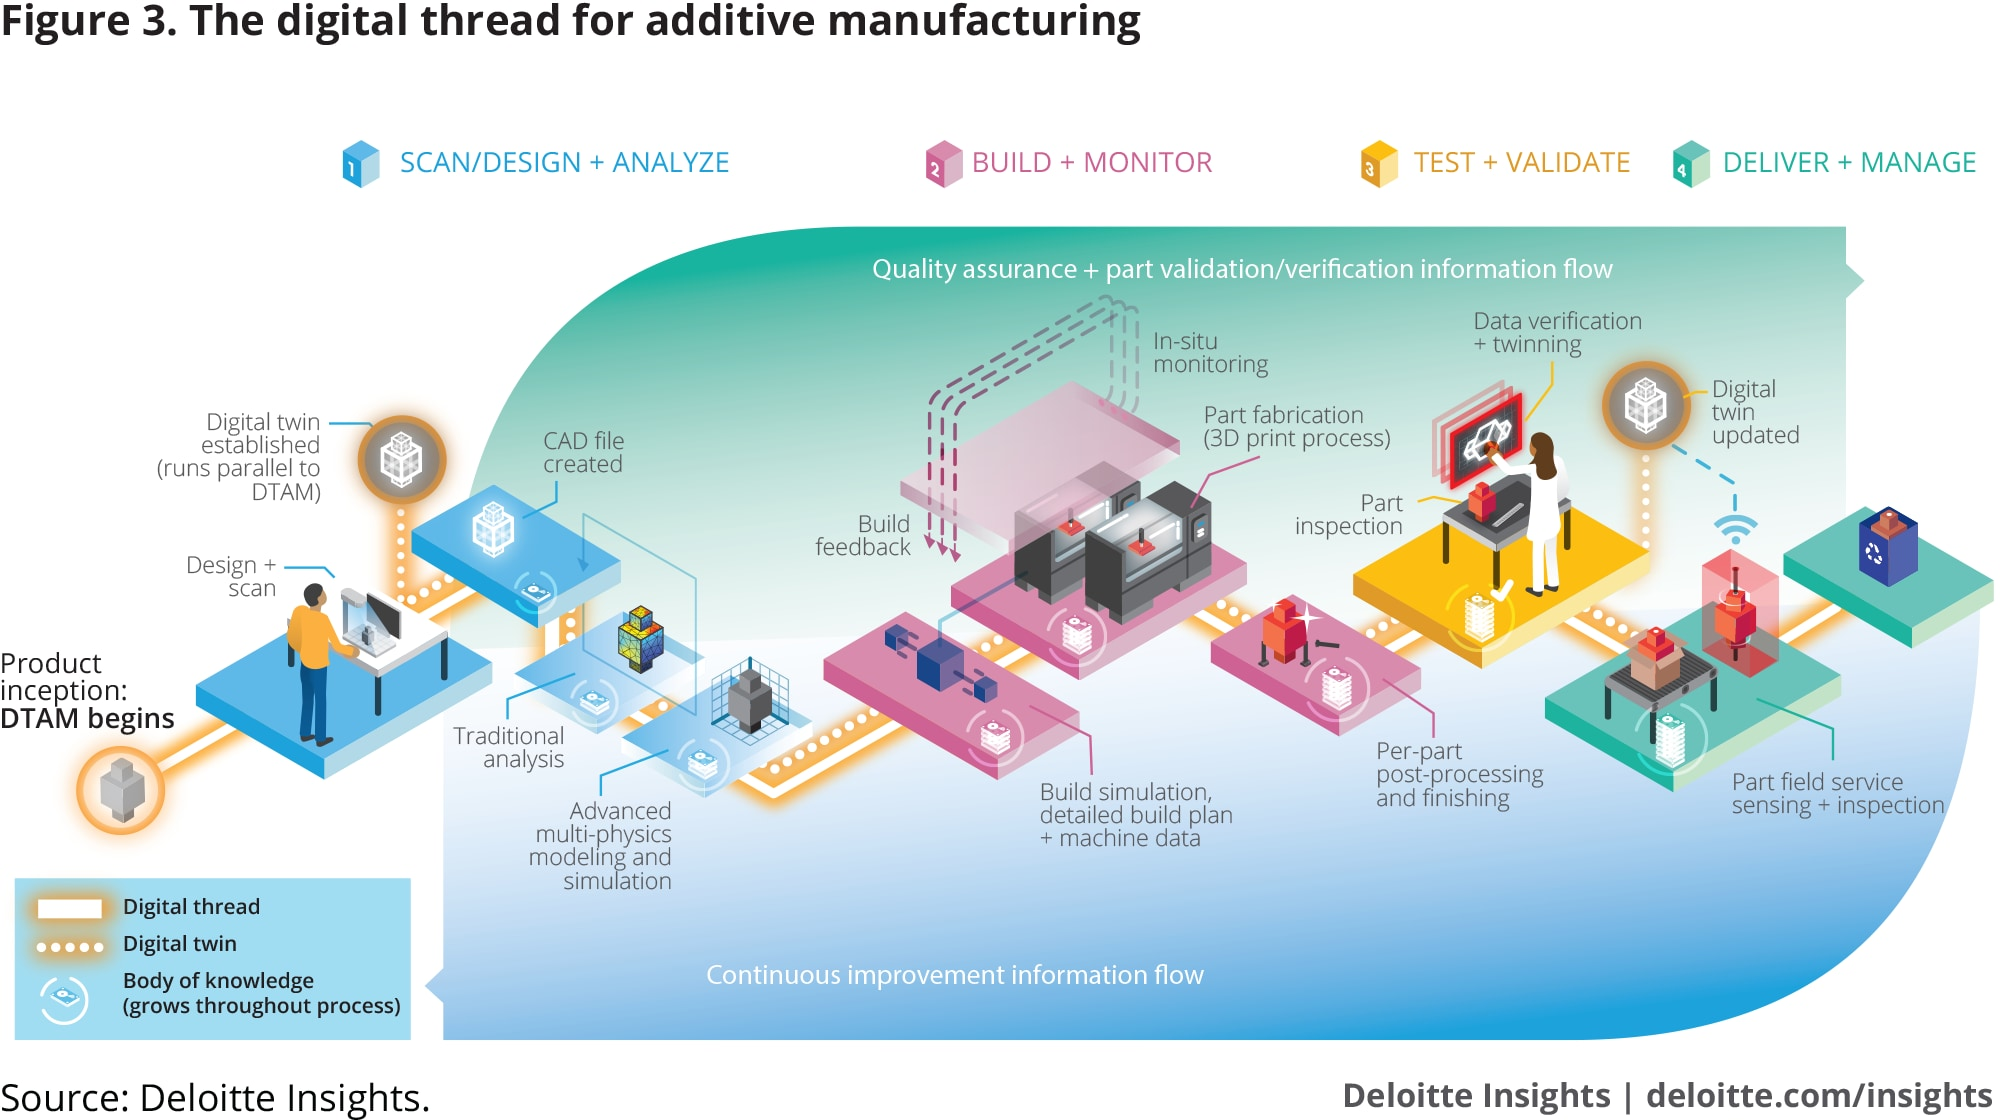 The digital thread for additive manufacturing